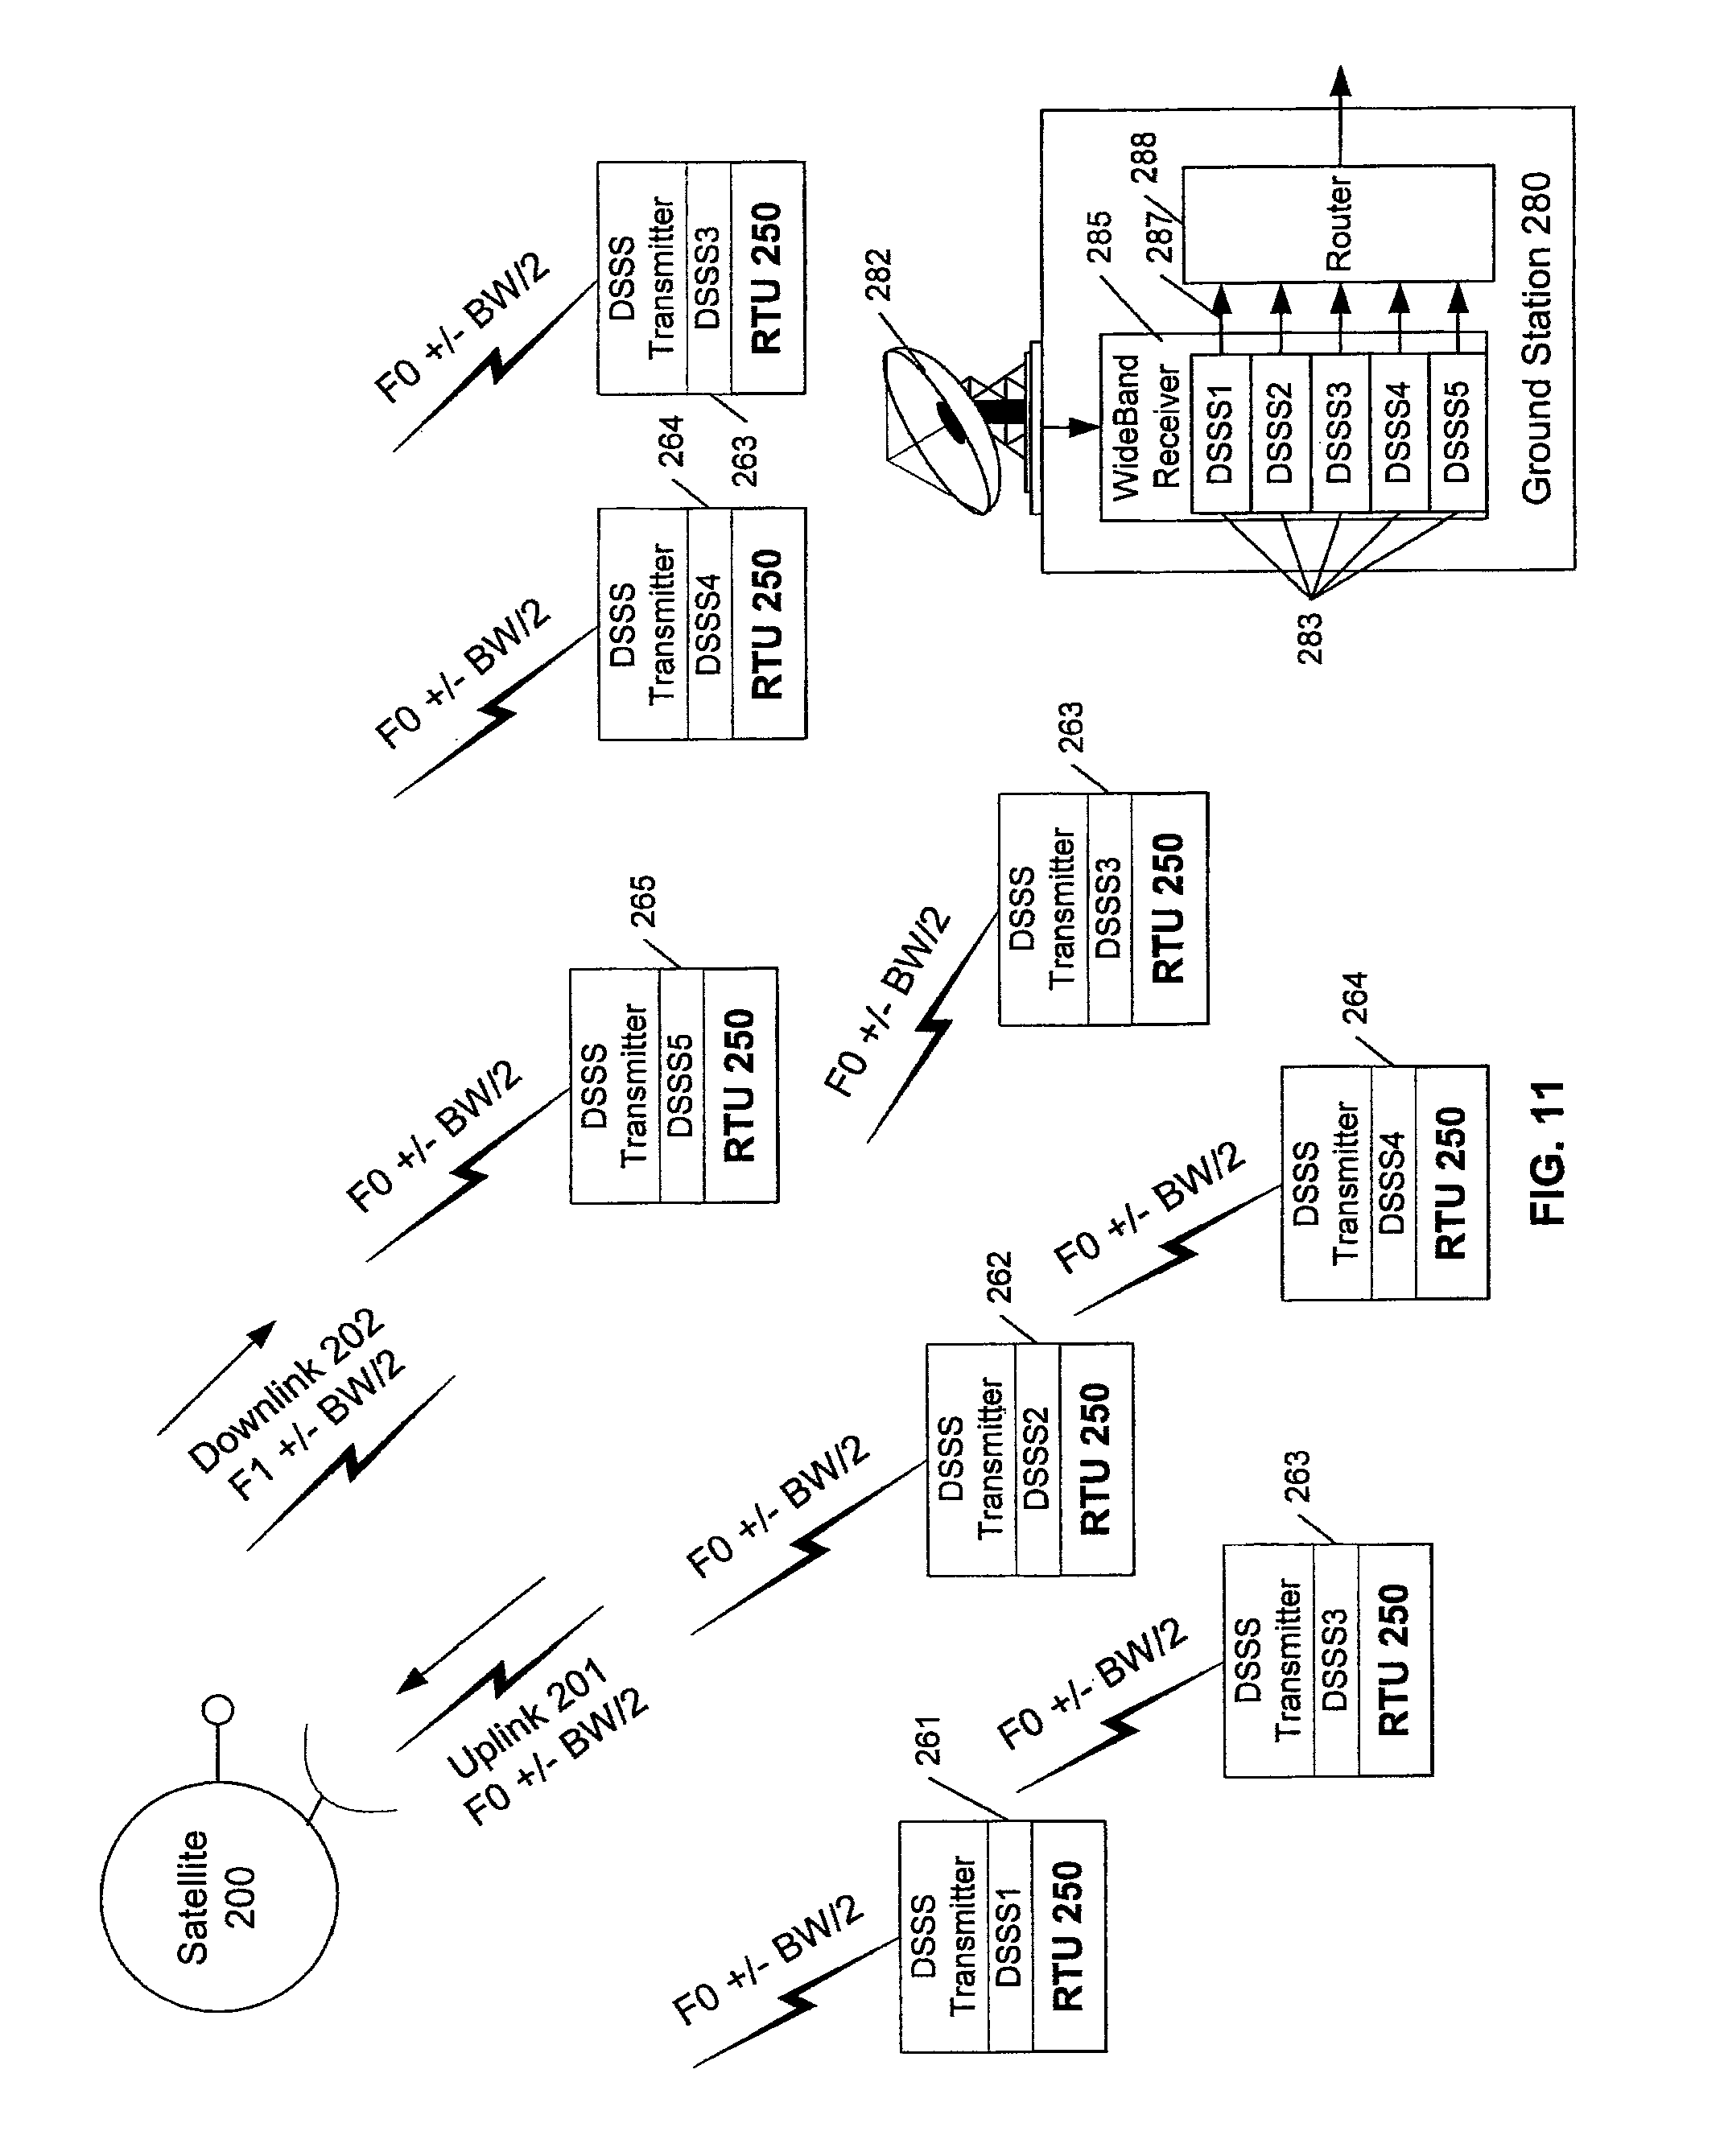 patent us 8 670 707 b2  petitions